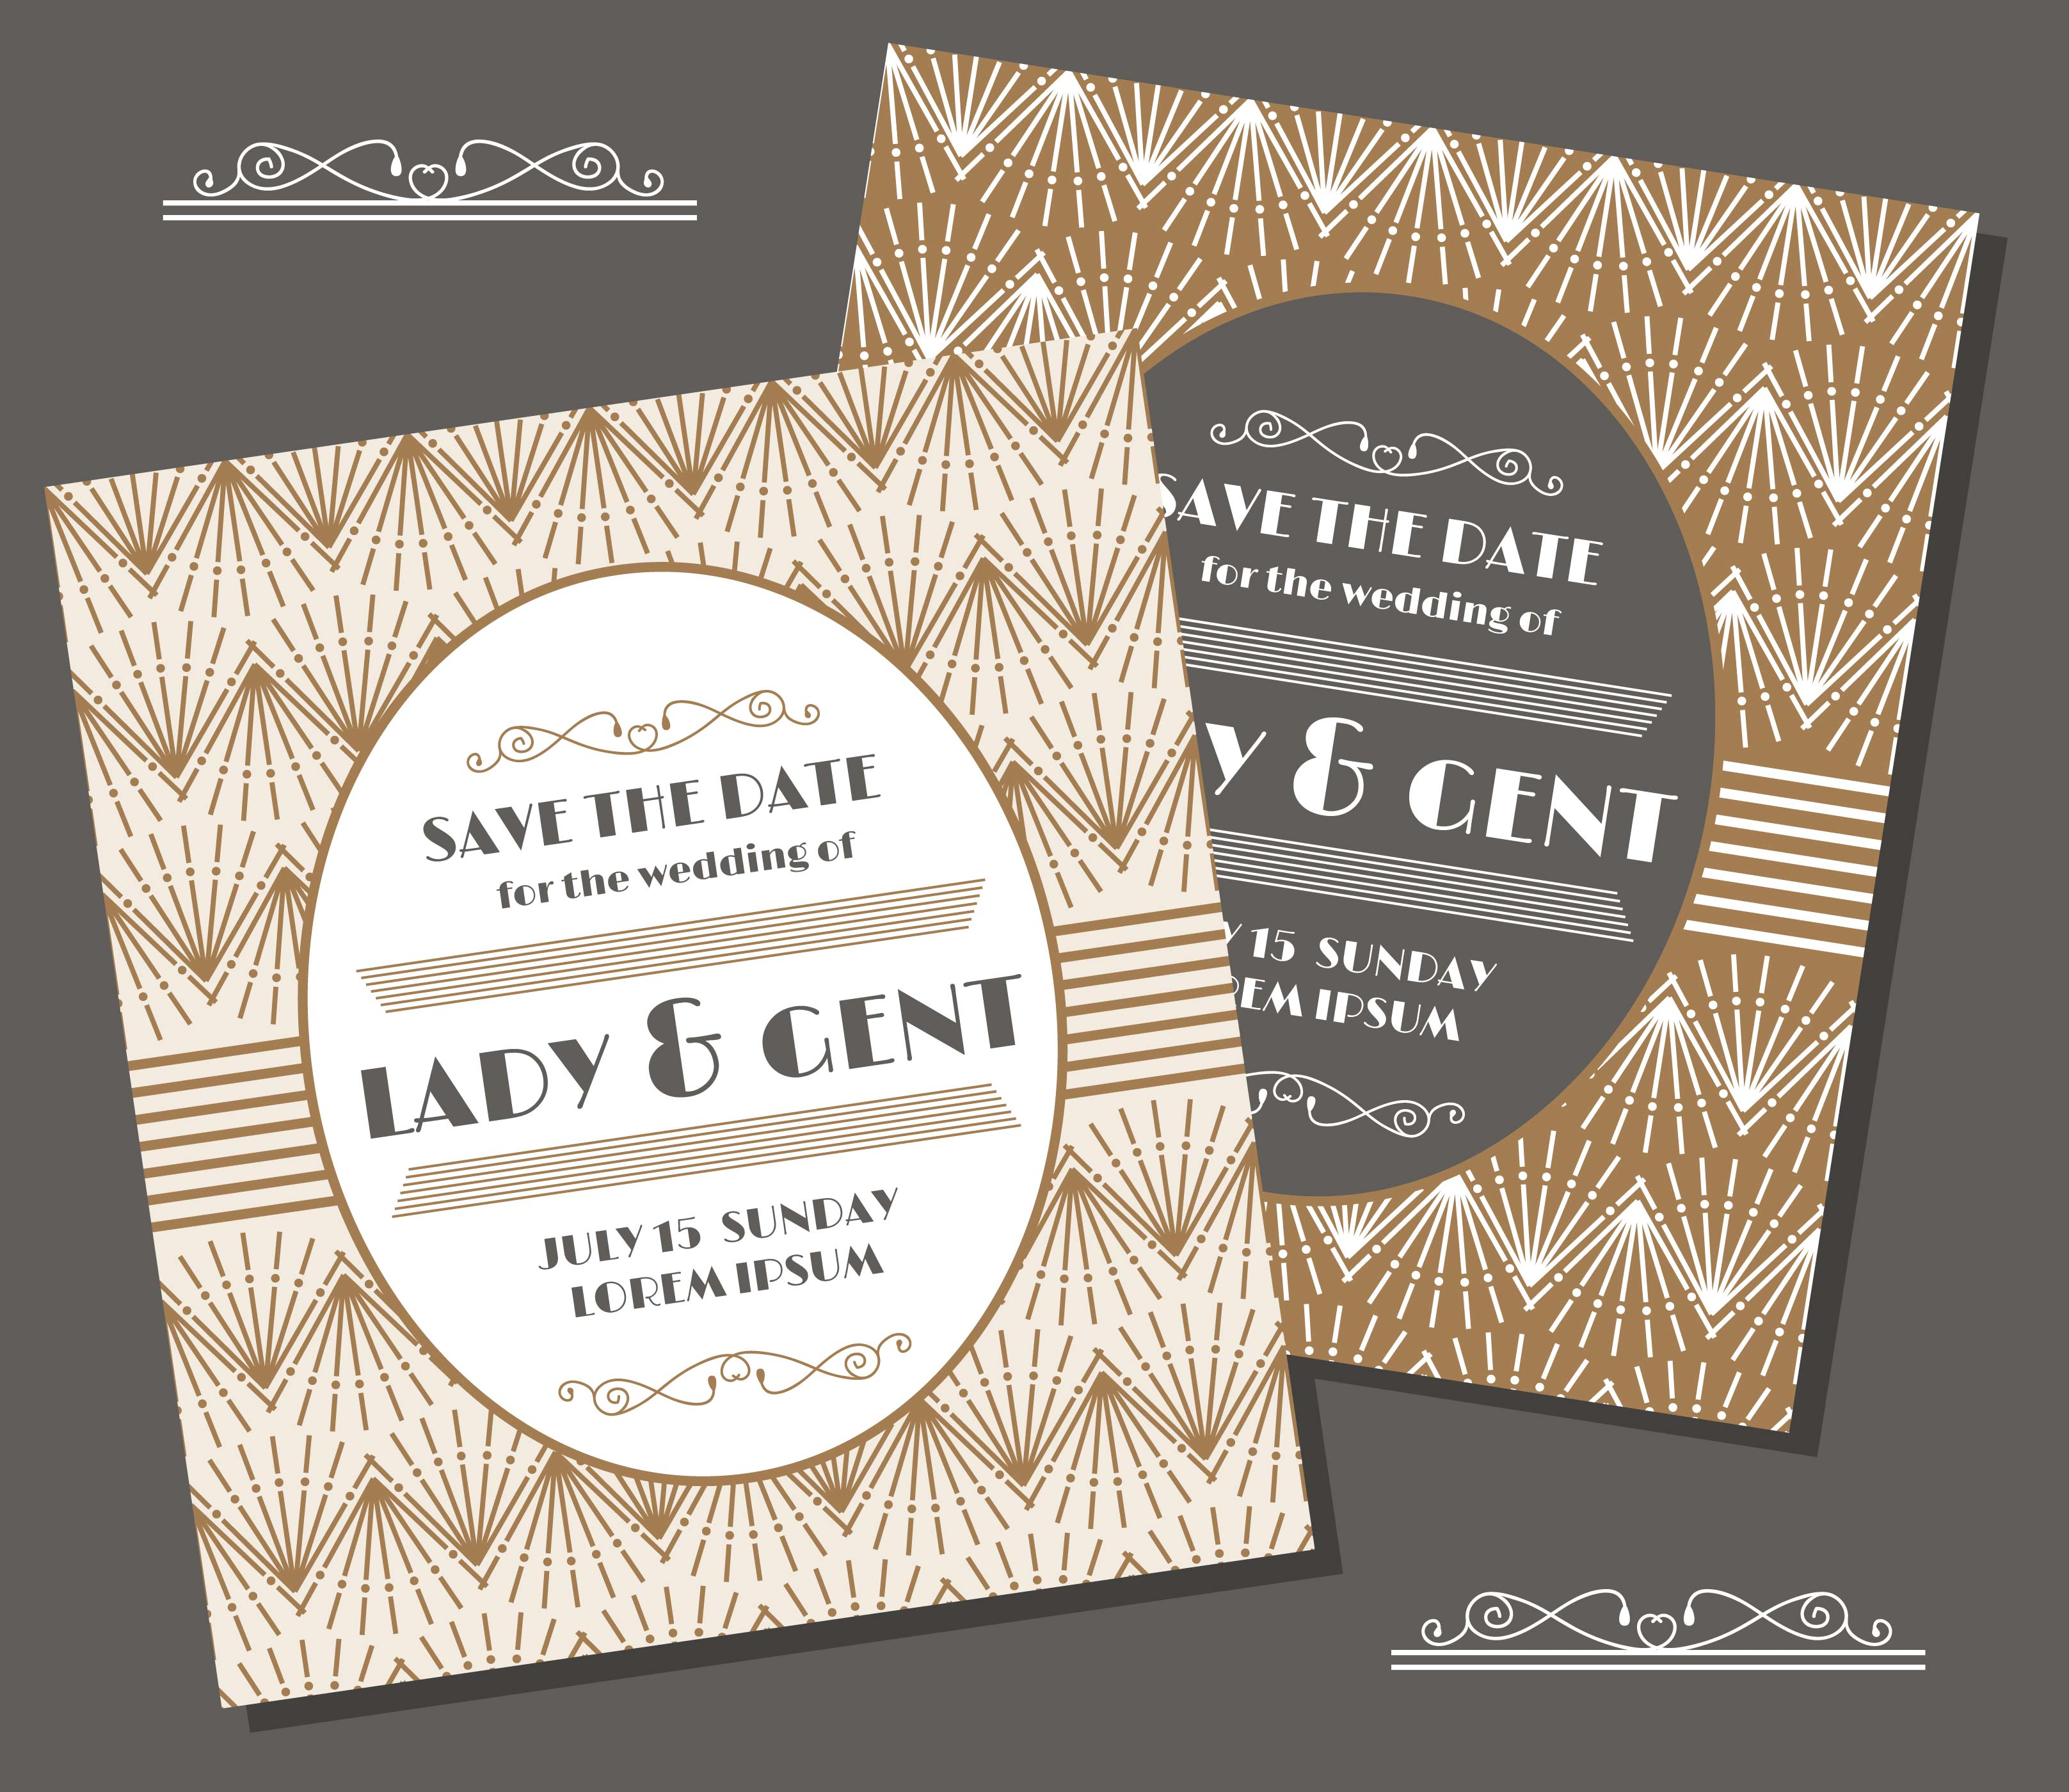 Save The Date Template - (24894 Free Downloads)